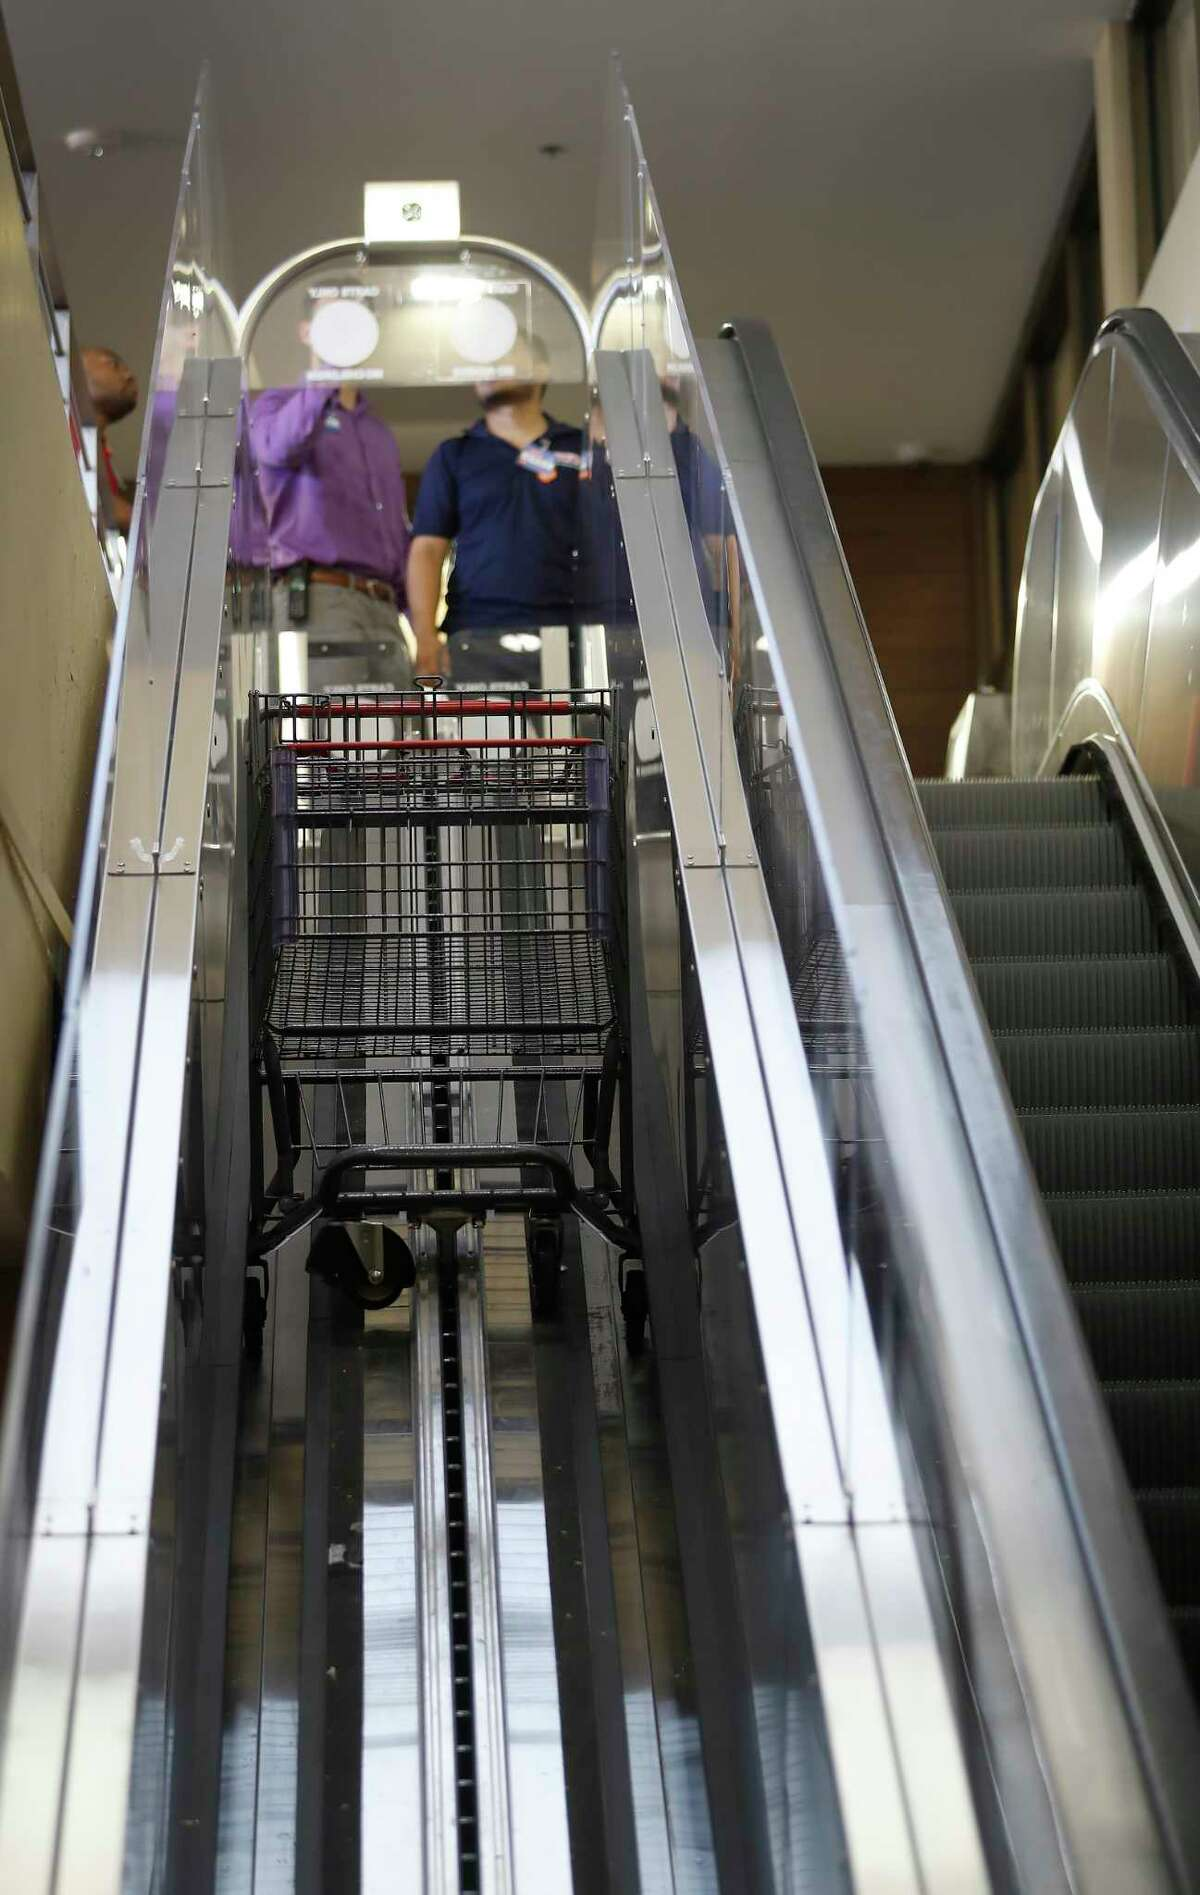 The shopping cart escalator is tested at the new H-E-B store, Monday, June 25, 2018, in Bellaire. It's the first two-story H-E-B to open in the Houston area.